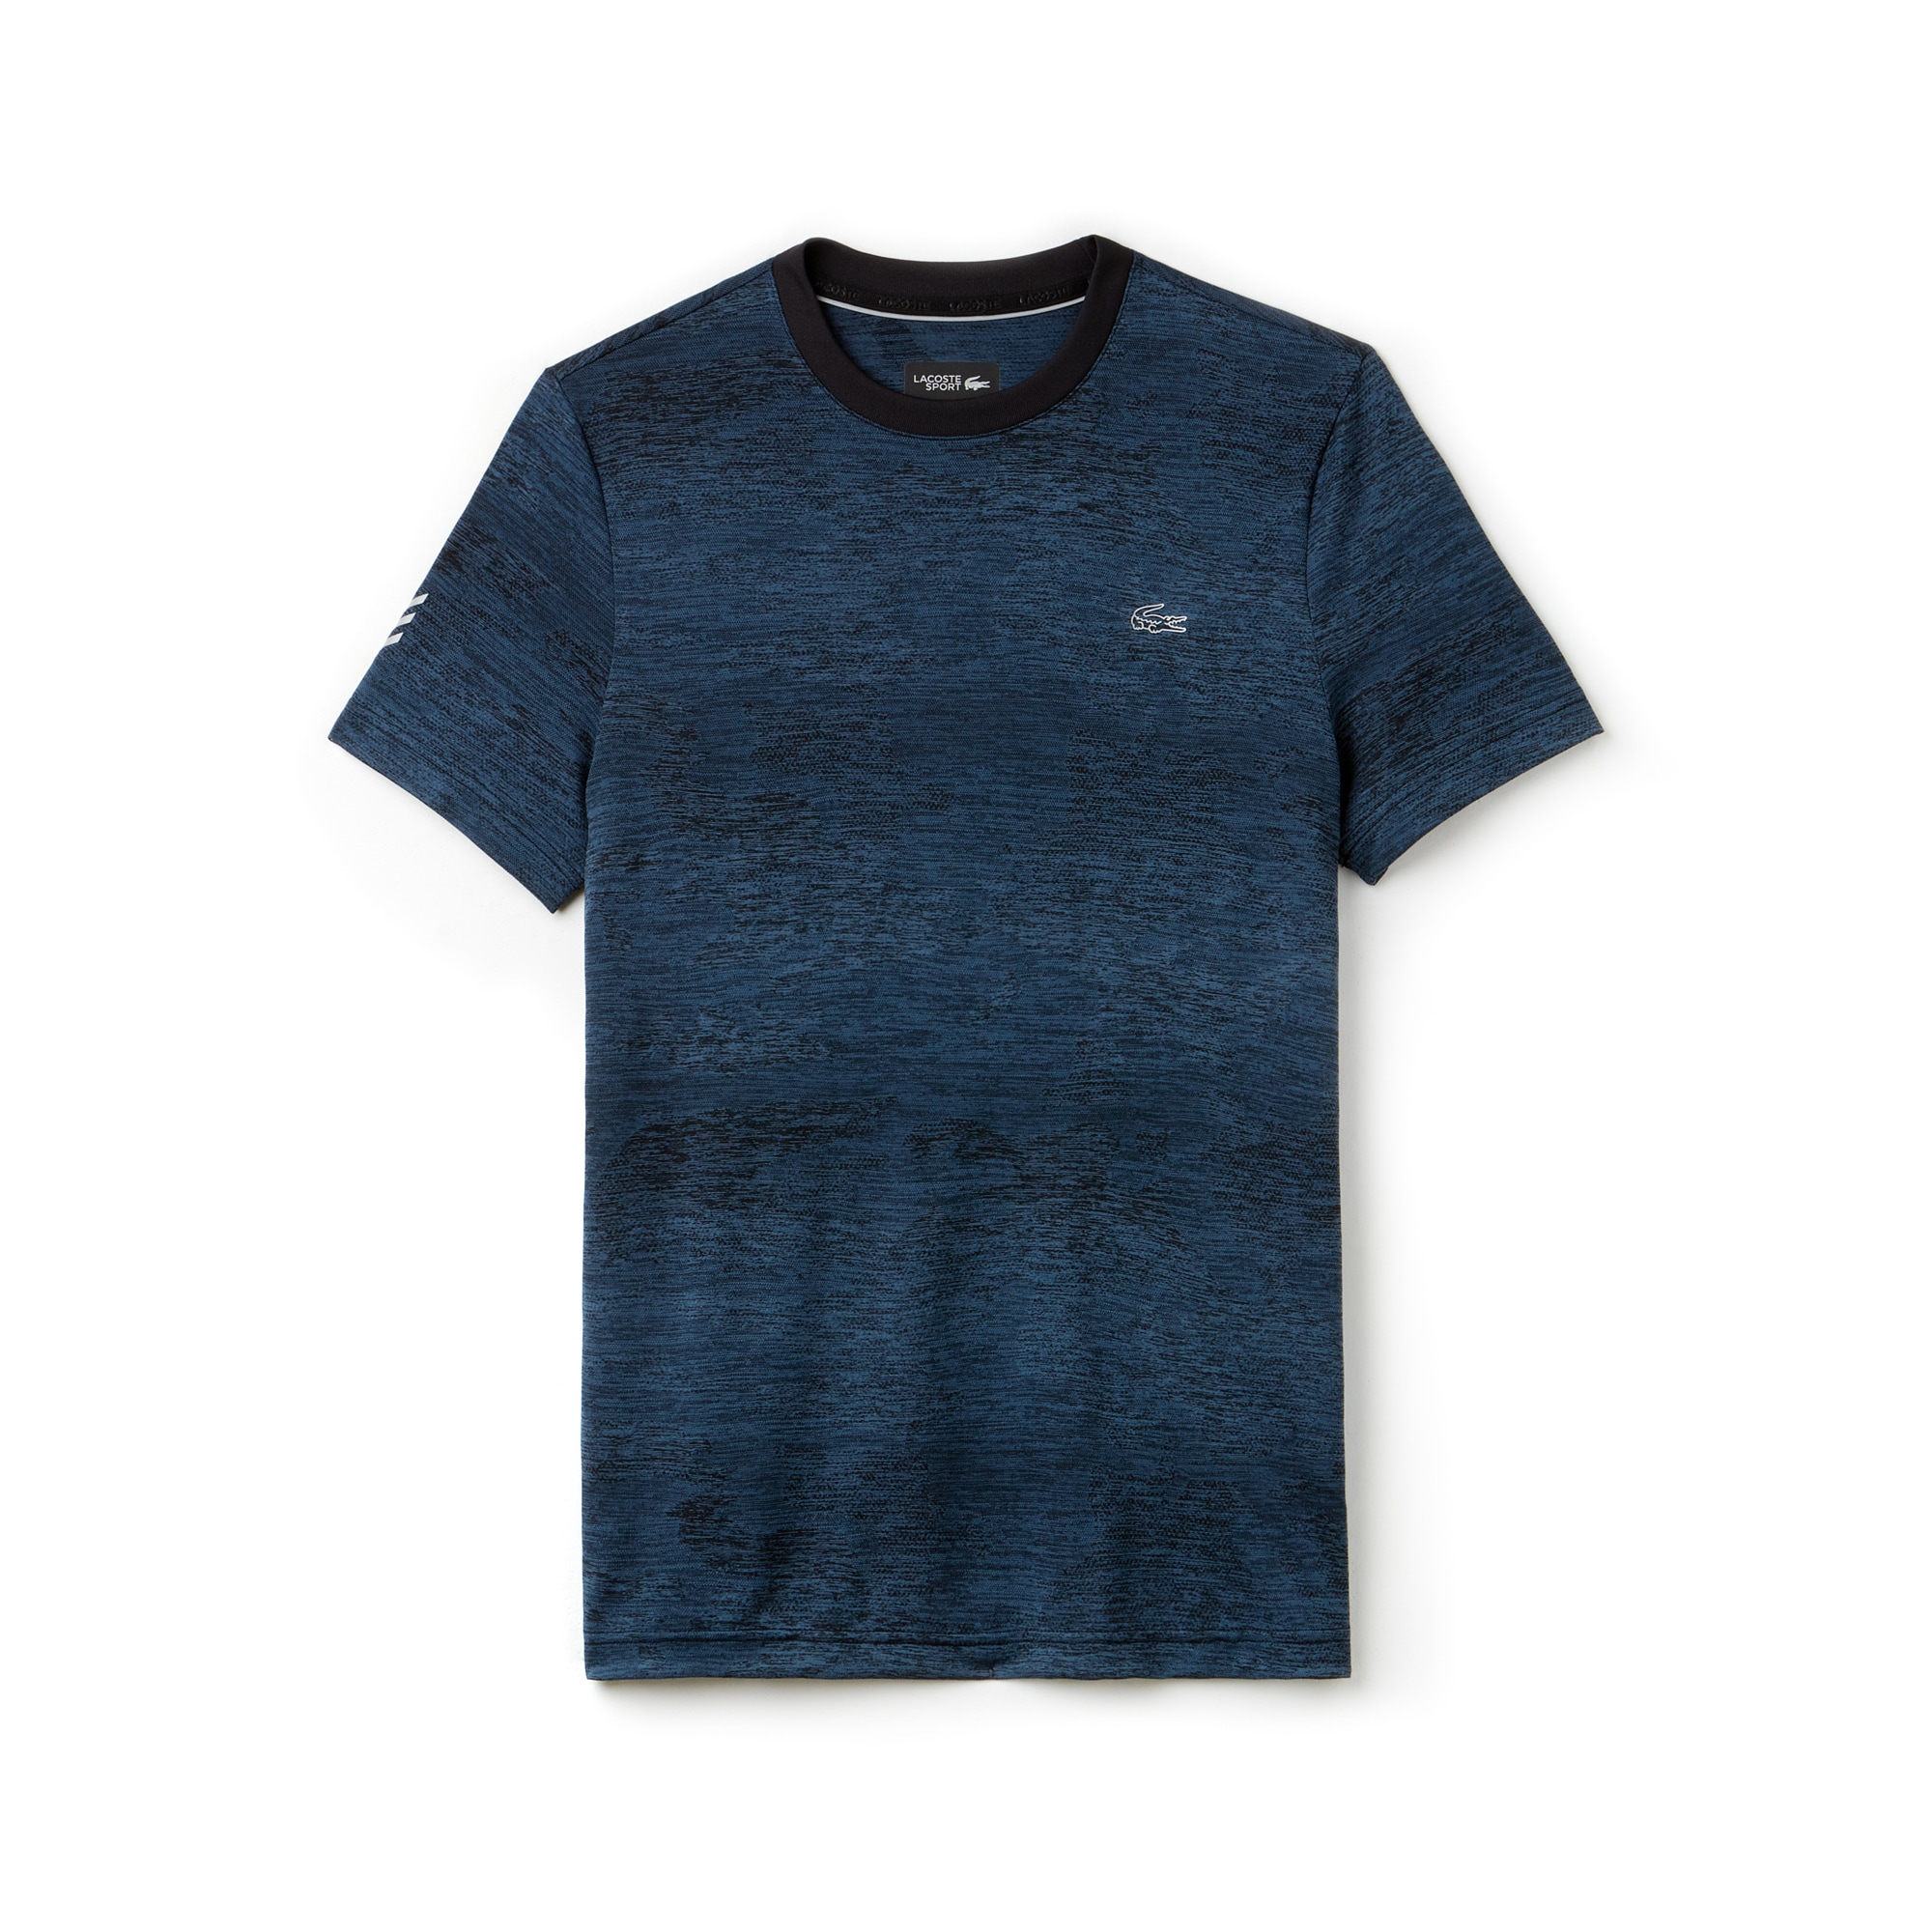 T-shirt Tennis Lacoste SPORT in jersey tecnico stampato